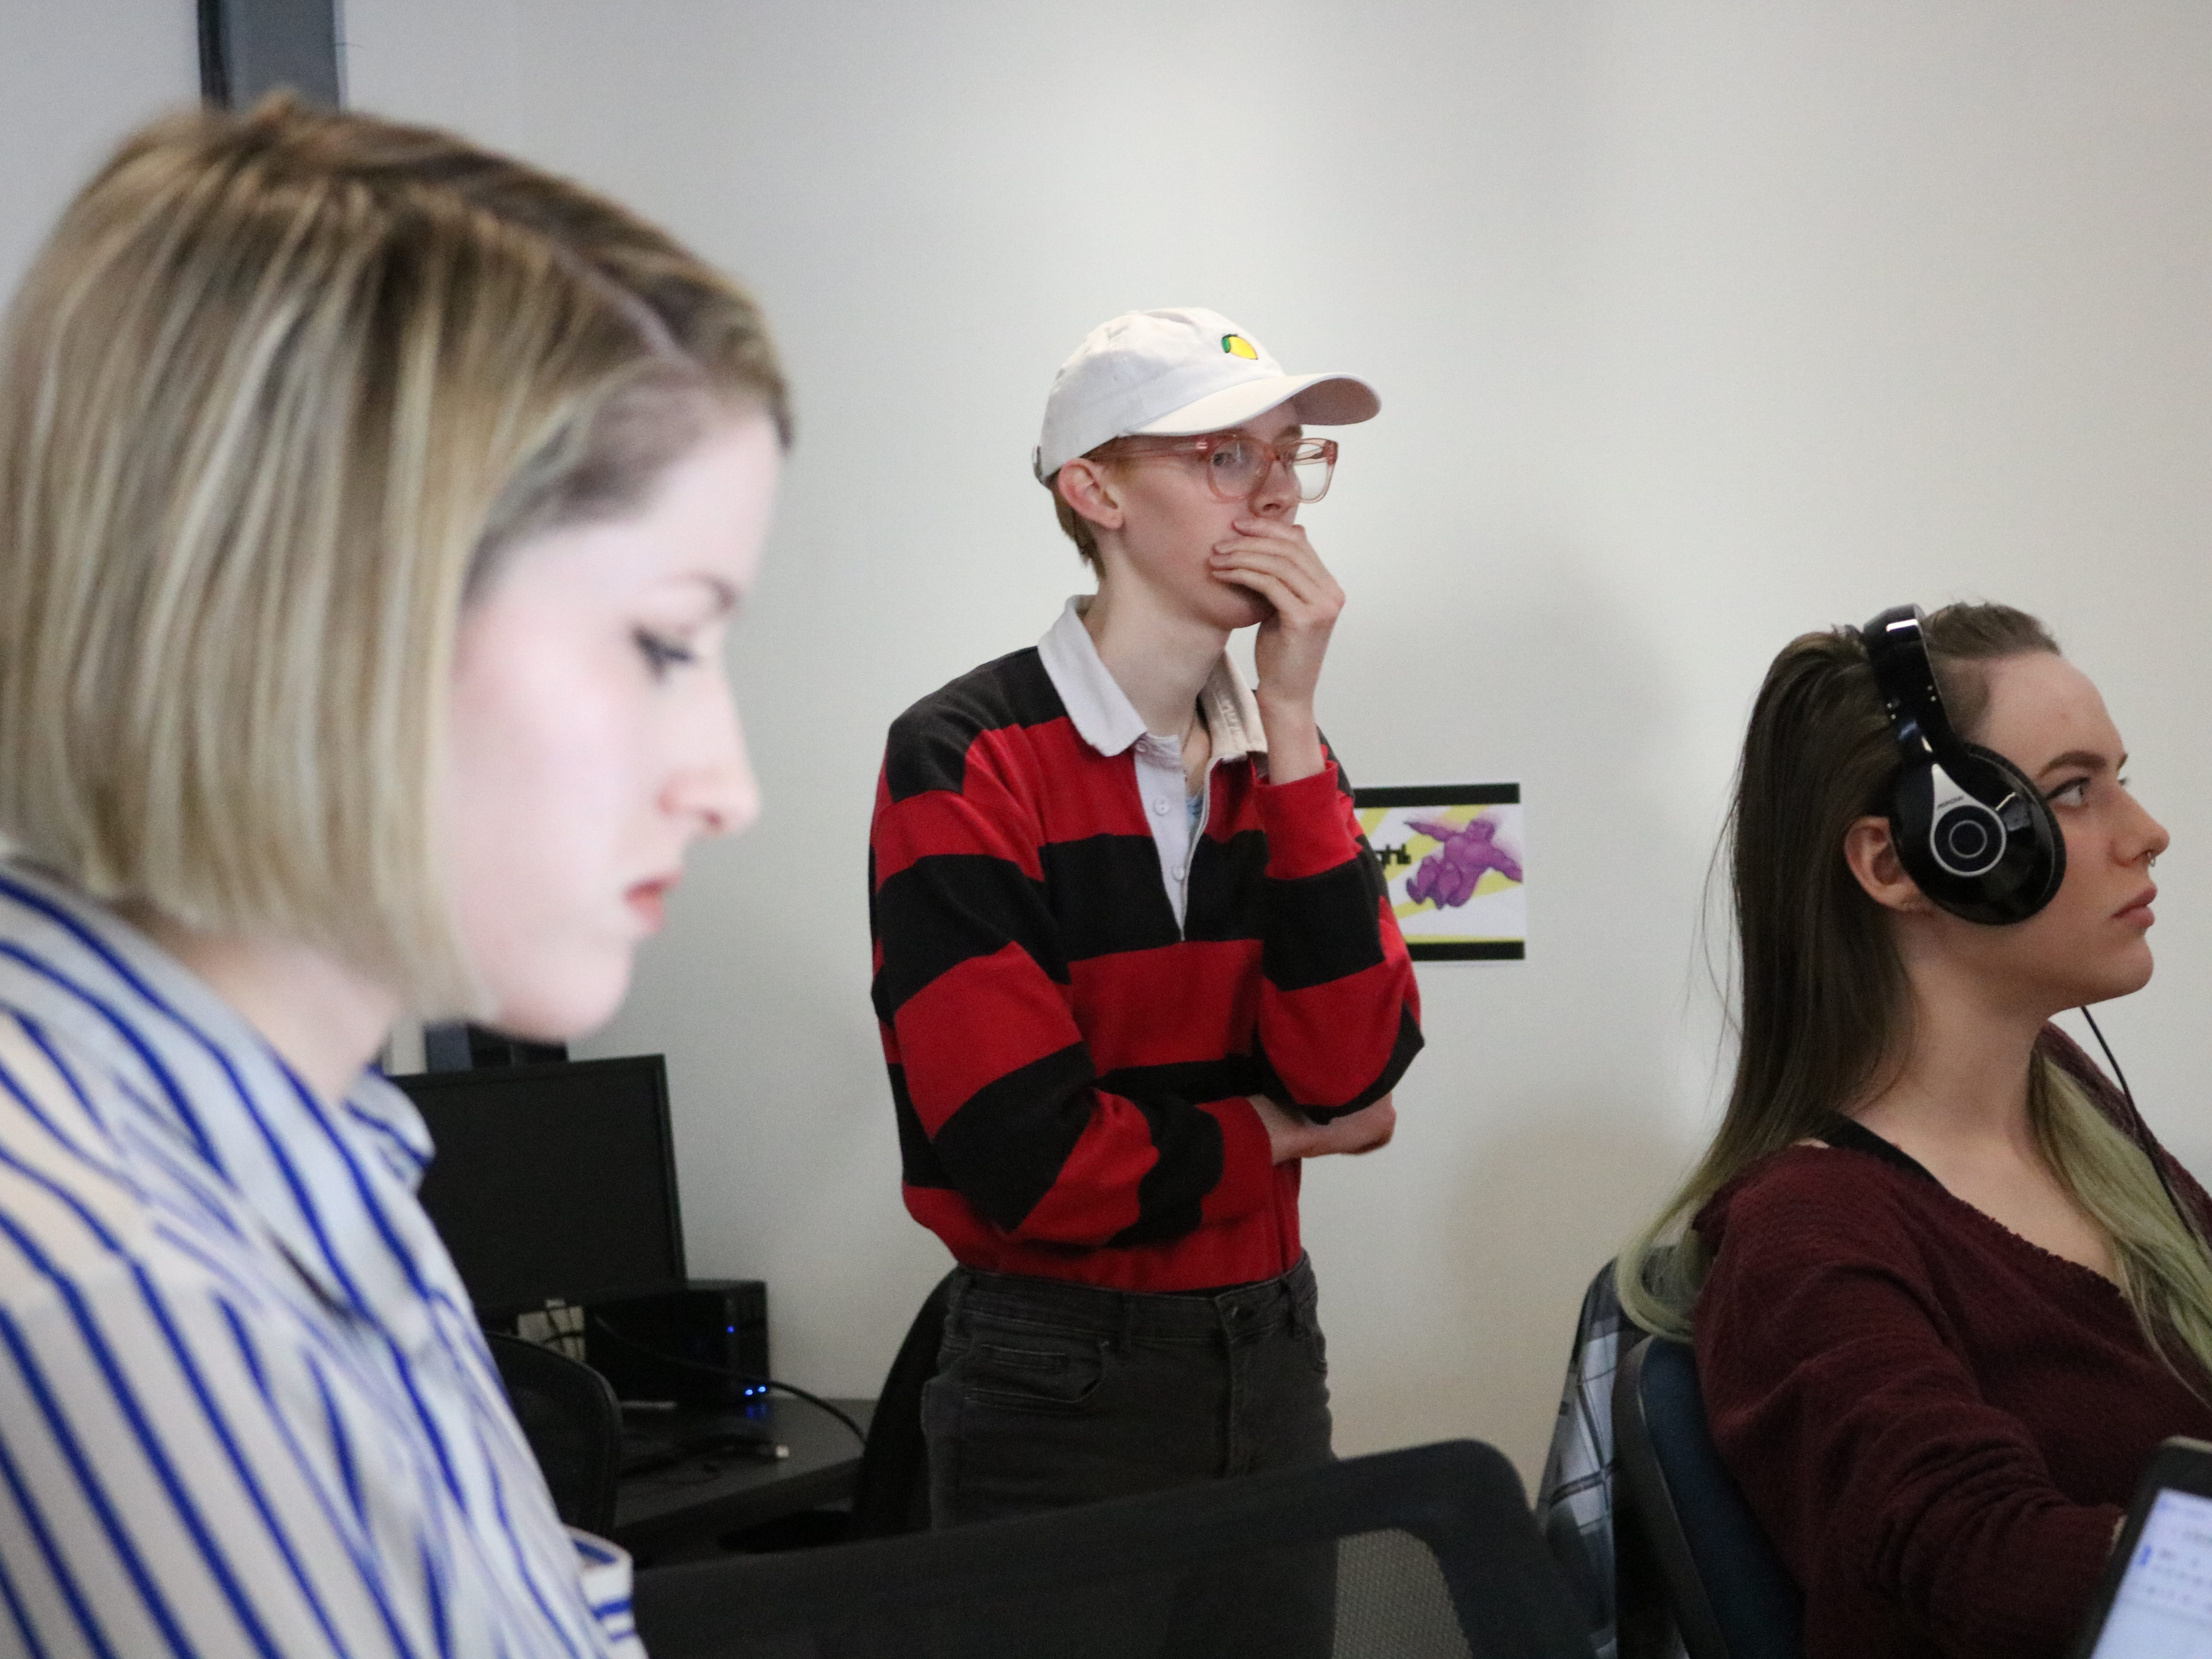 Shannon Mitchell of Game Theory in the foreground with two other game builders who share a co-working space at Chace Mill in Burlington. There were a mix of genders and racial diversity in the space, which is not typical of the industry, according to statistics.